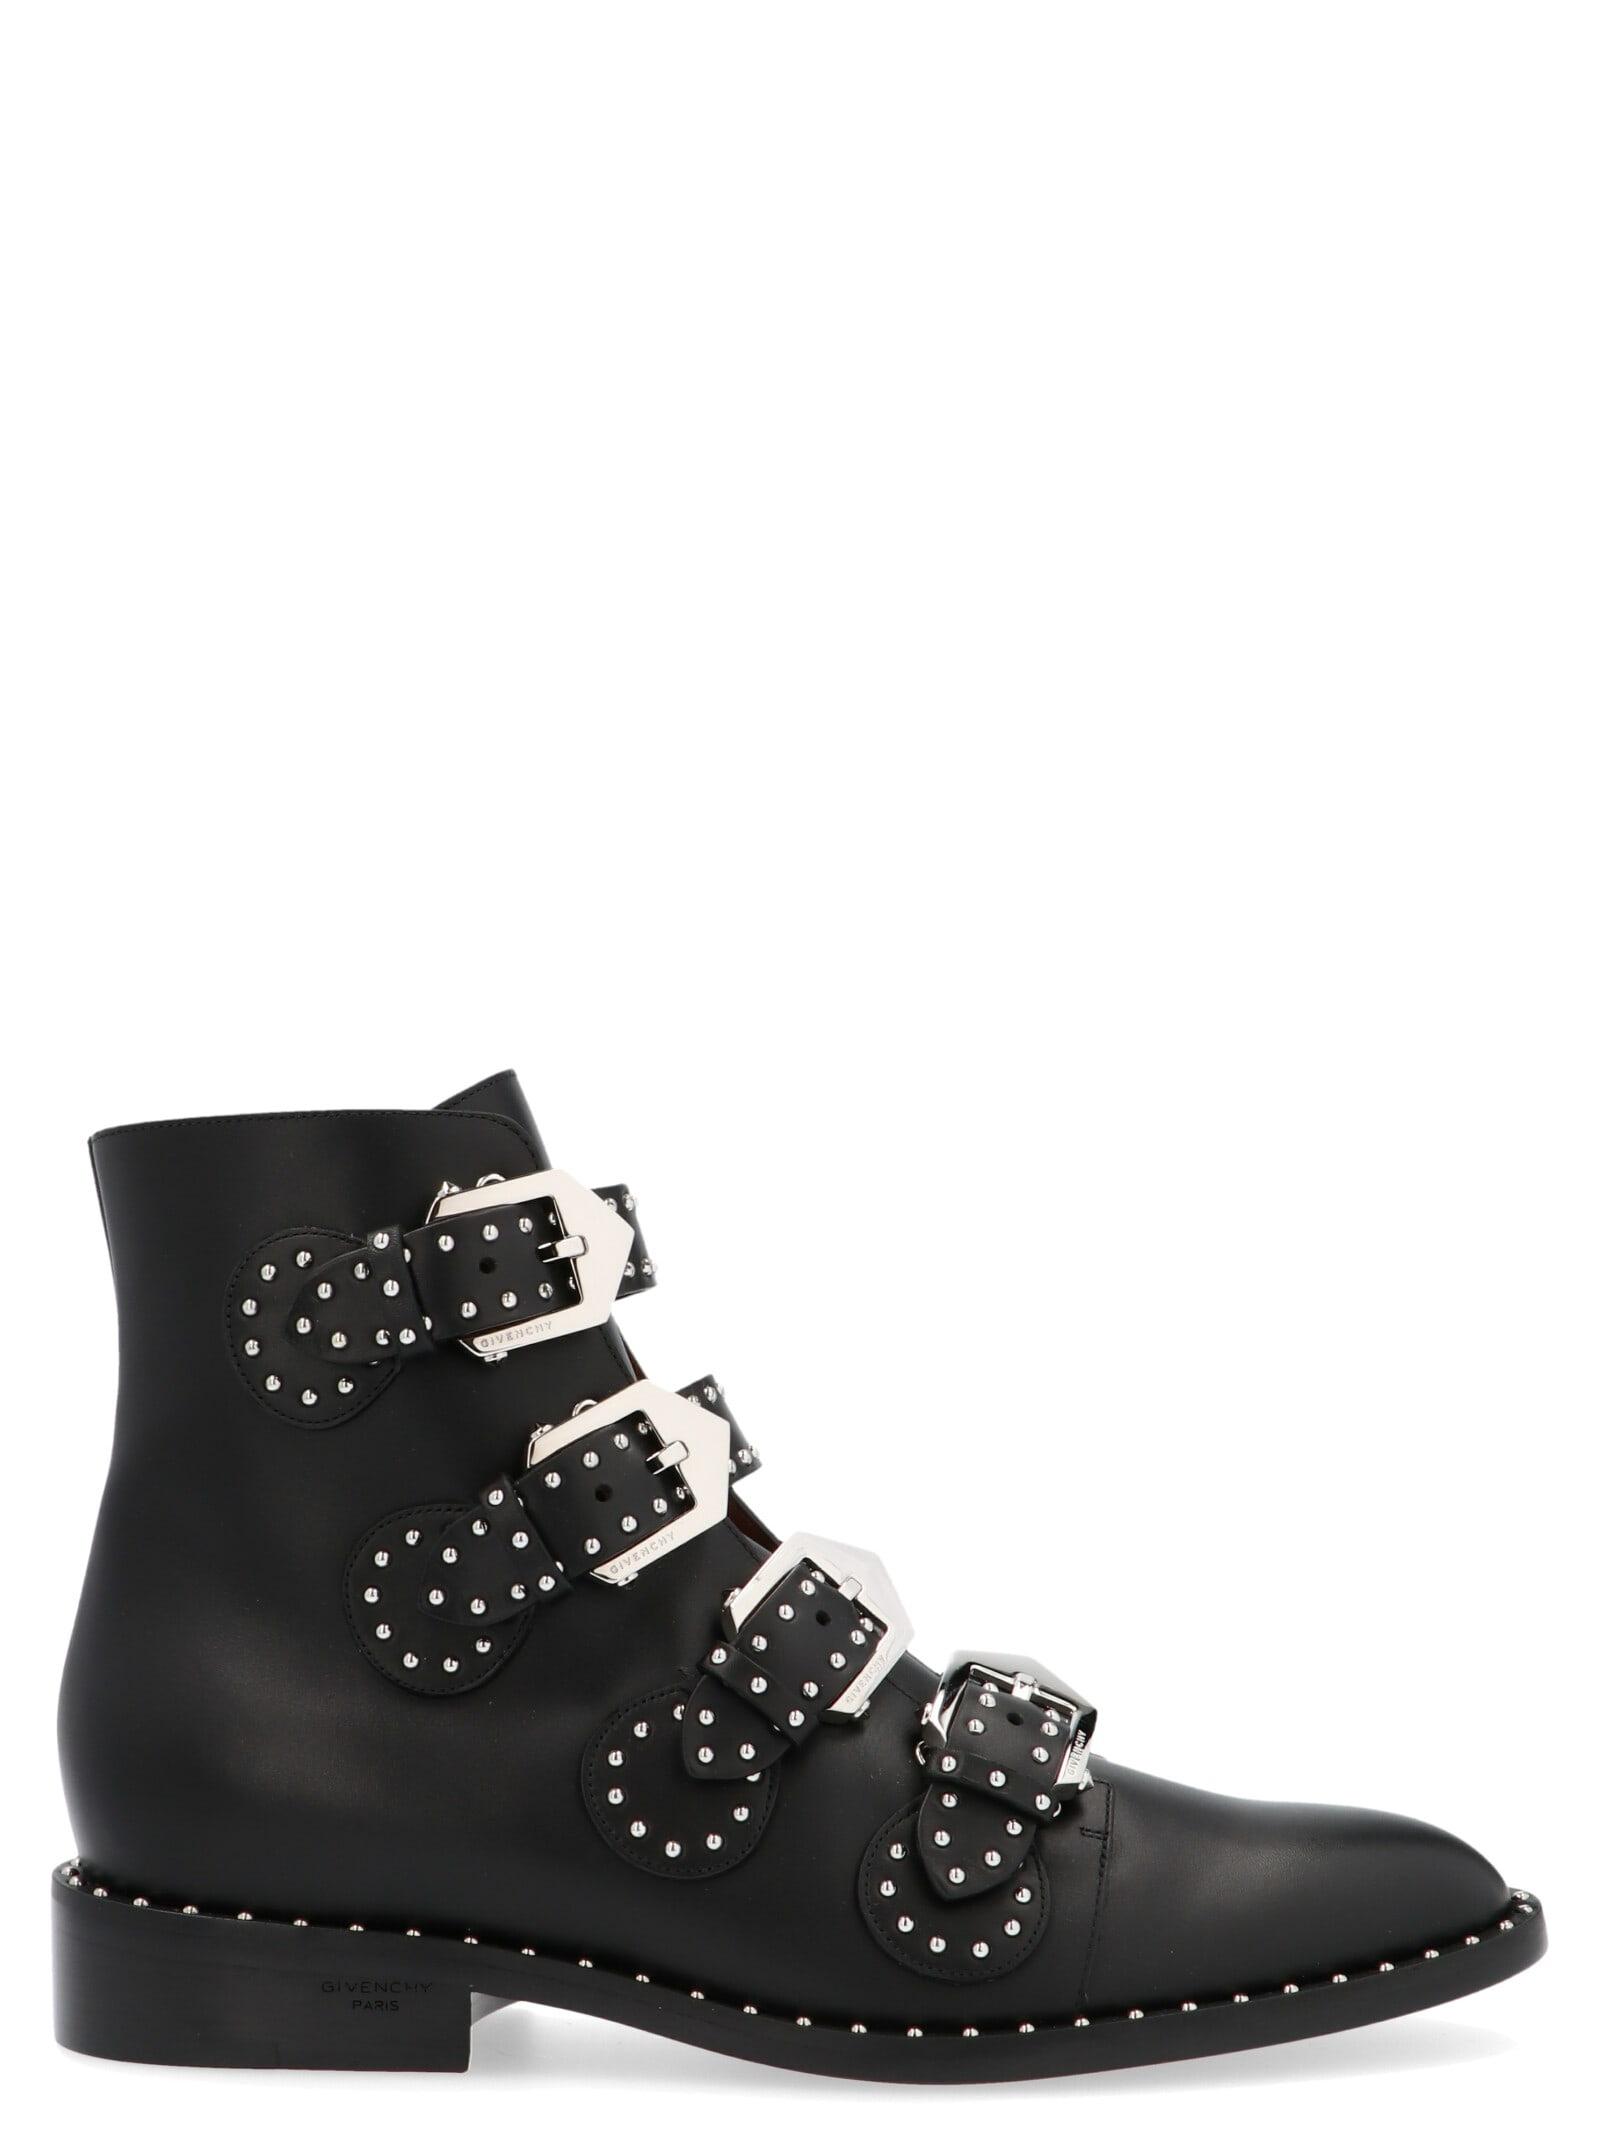 Givenchy Elegant Studs Shoes